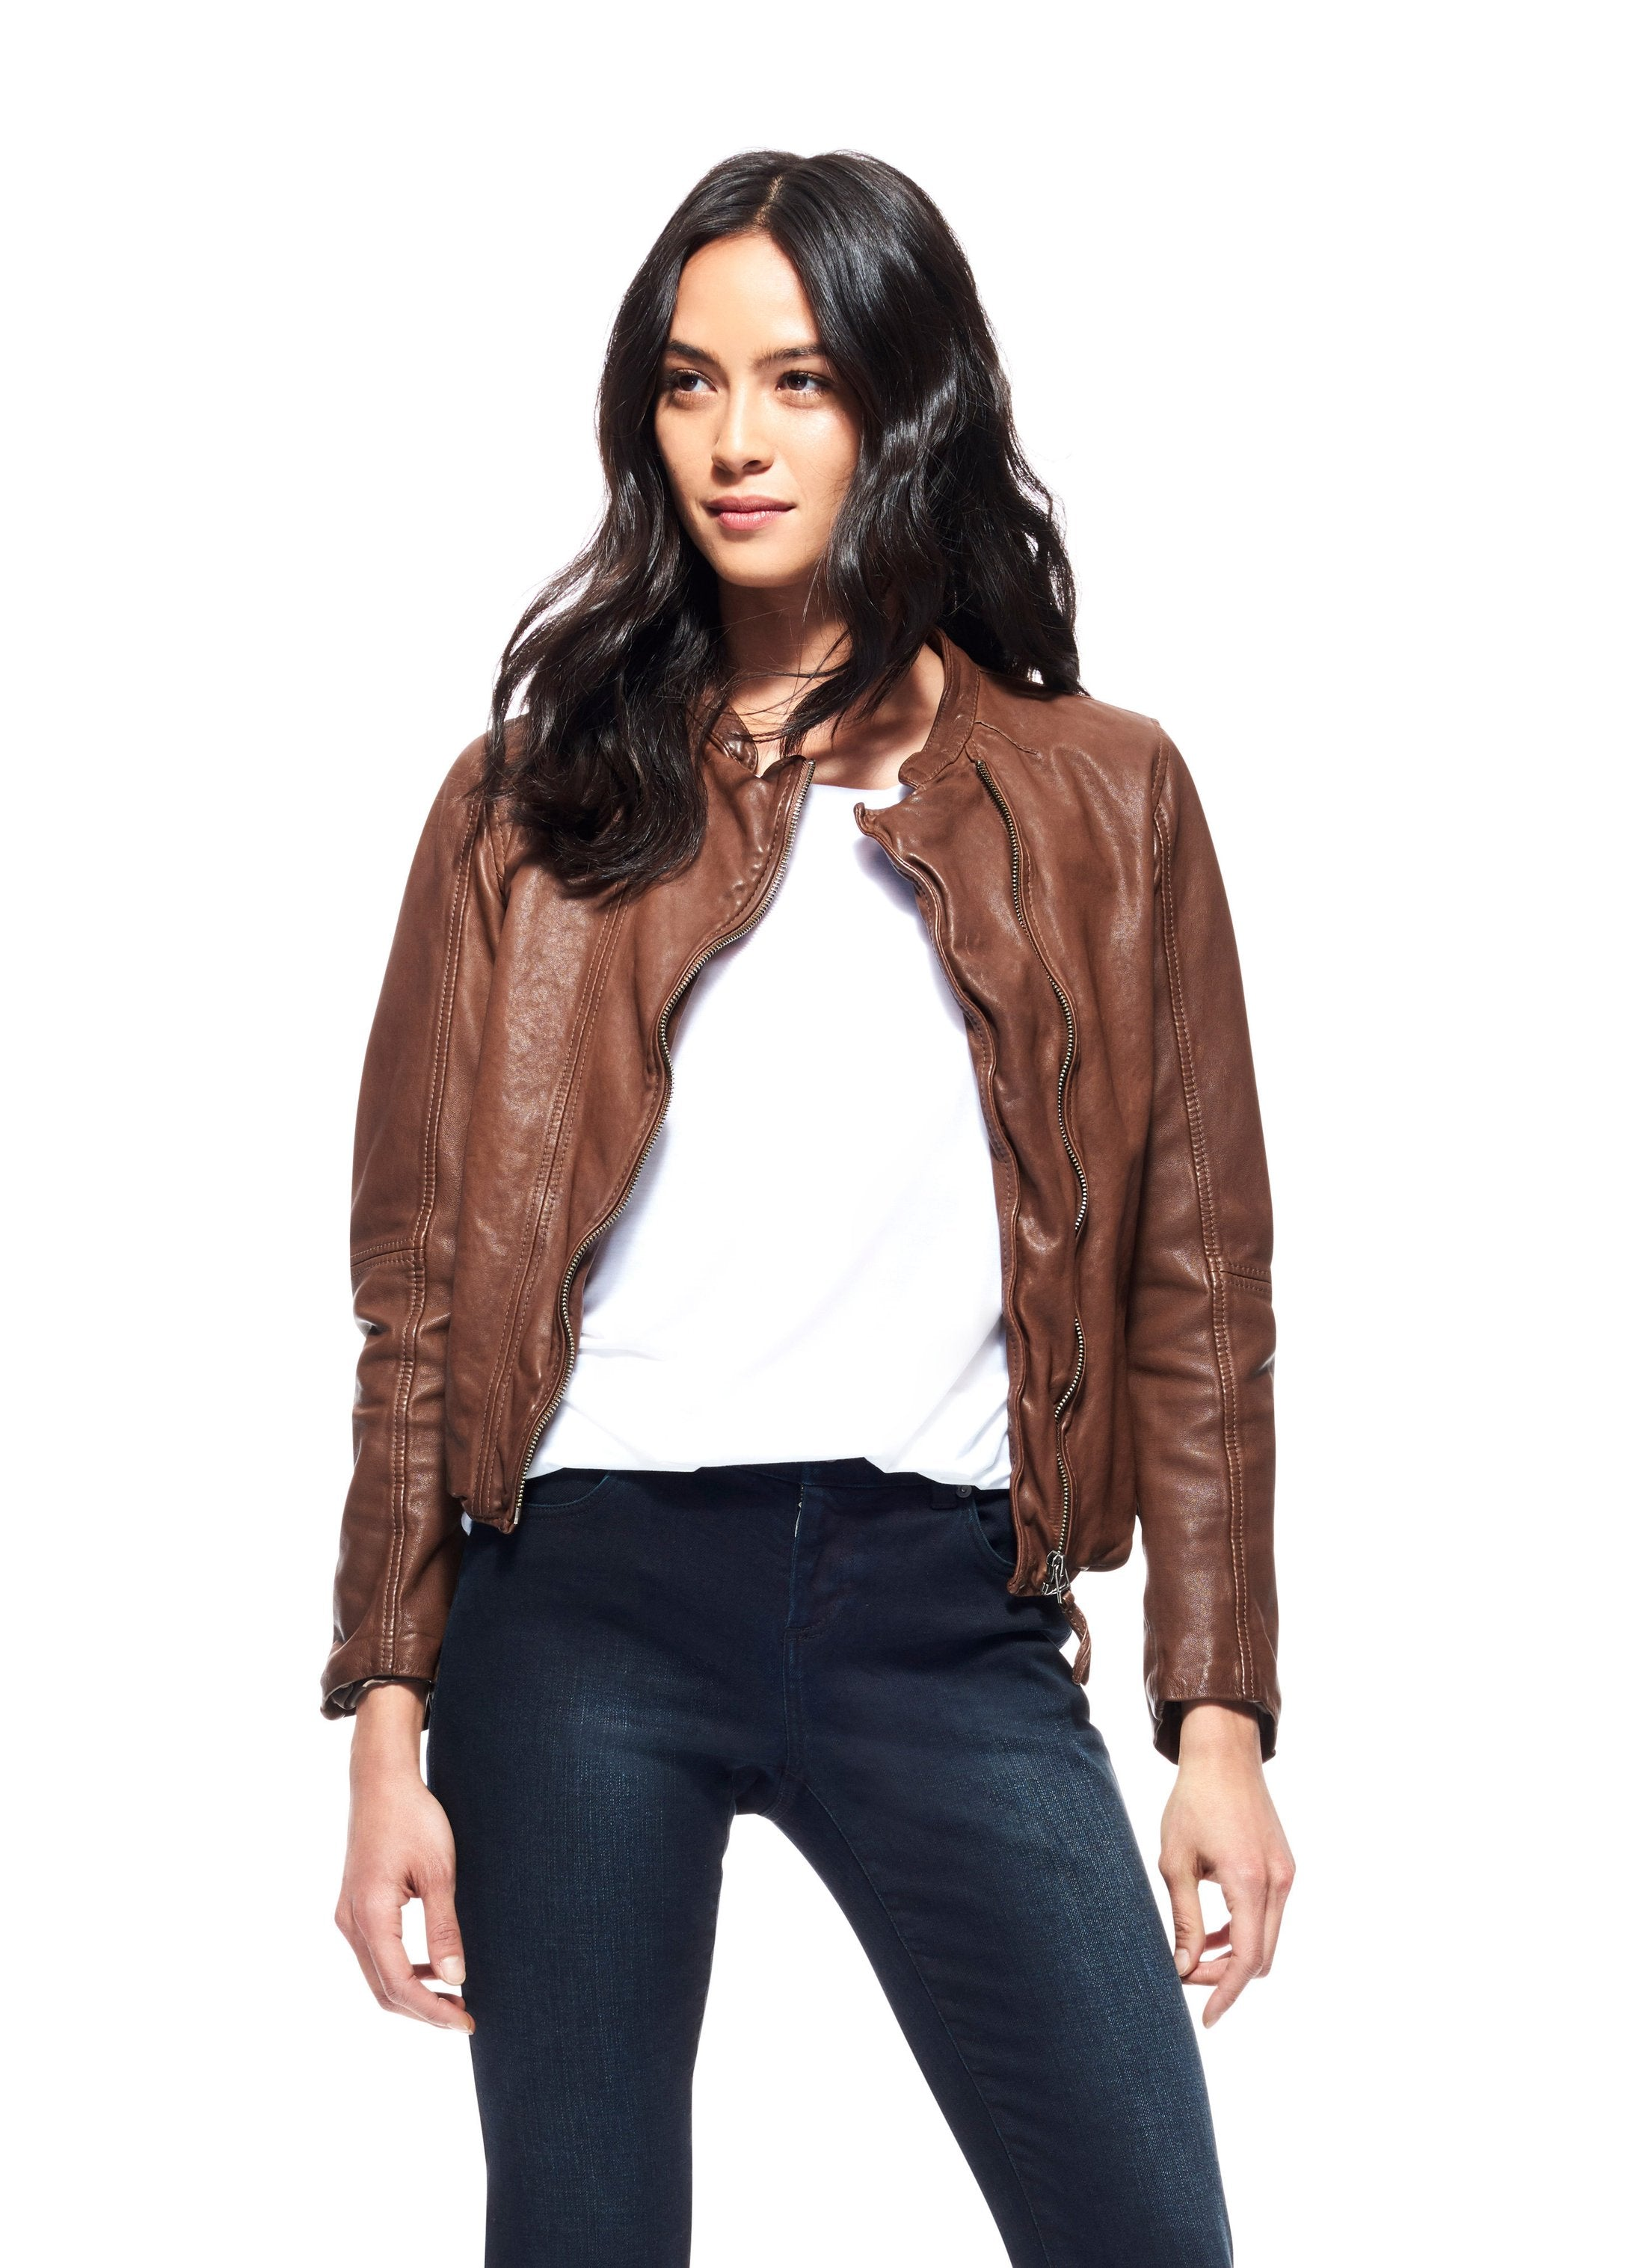 Brown washed leather, asymmetric, slim fit jacket found at Patricia in Southern Pines, NC